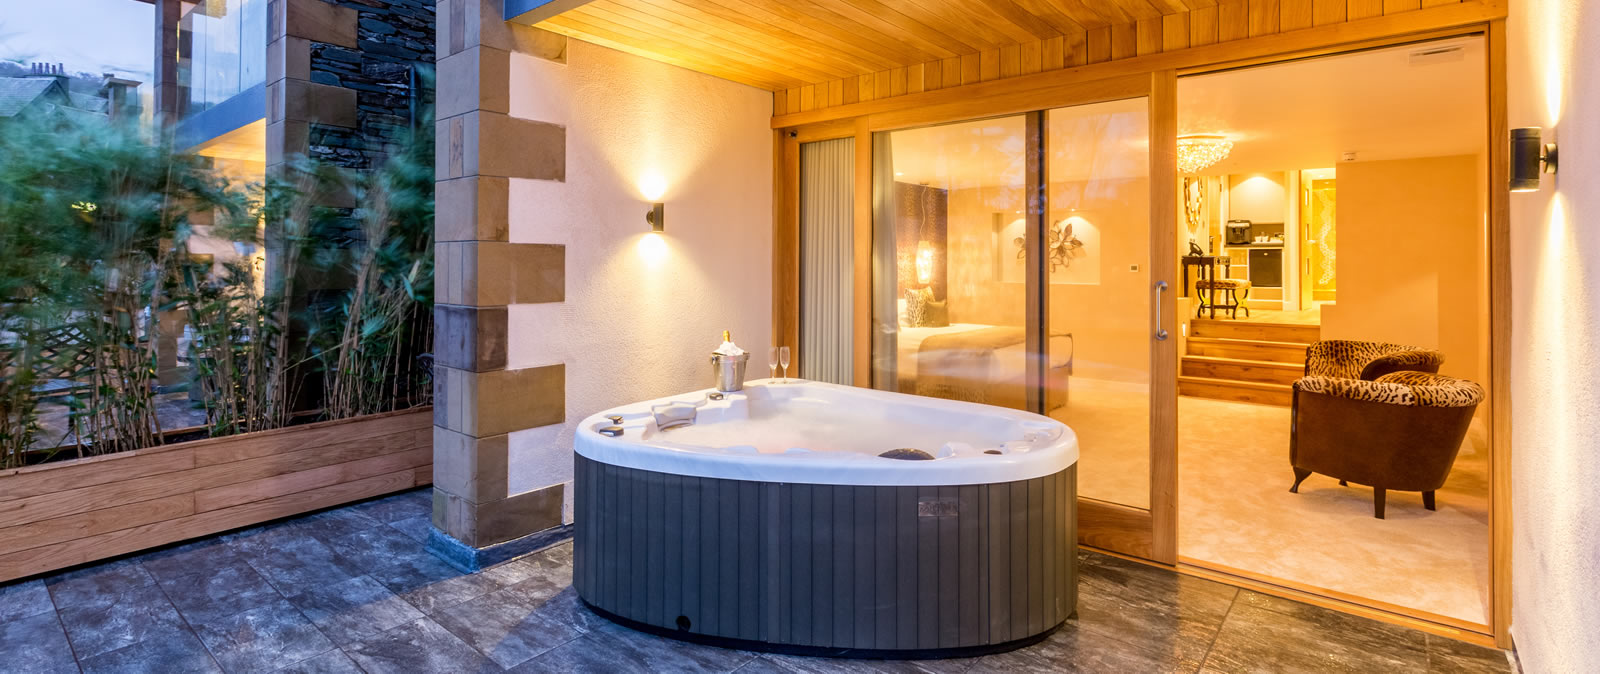 Applegarth Villa - Luxury Hot Tub Suite